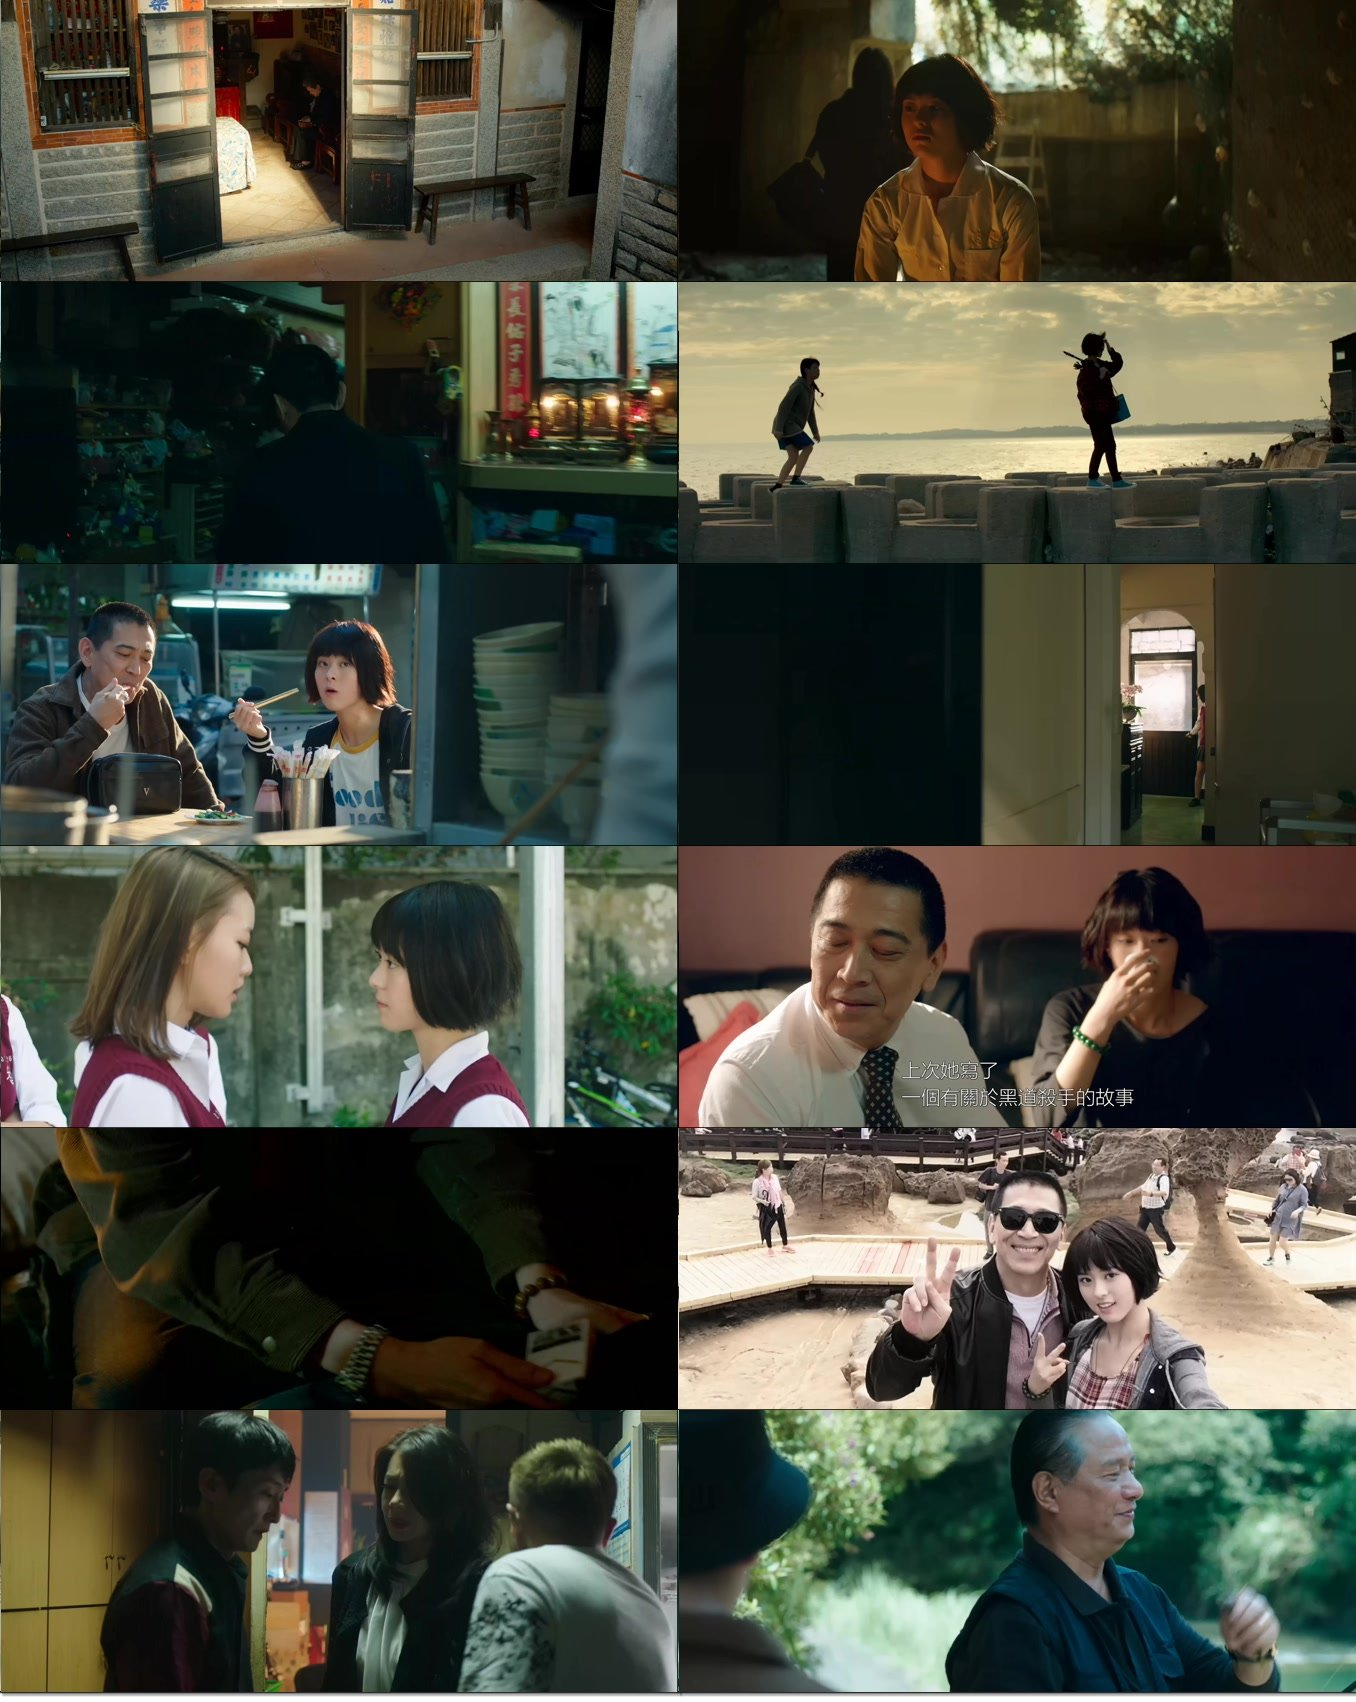 The.Gangsters.Daughter.2017.CHINESE.1080p.WEBRip.x264.mkv